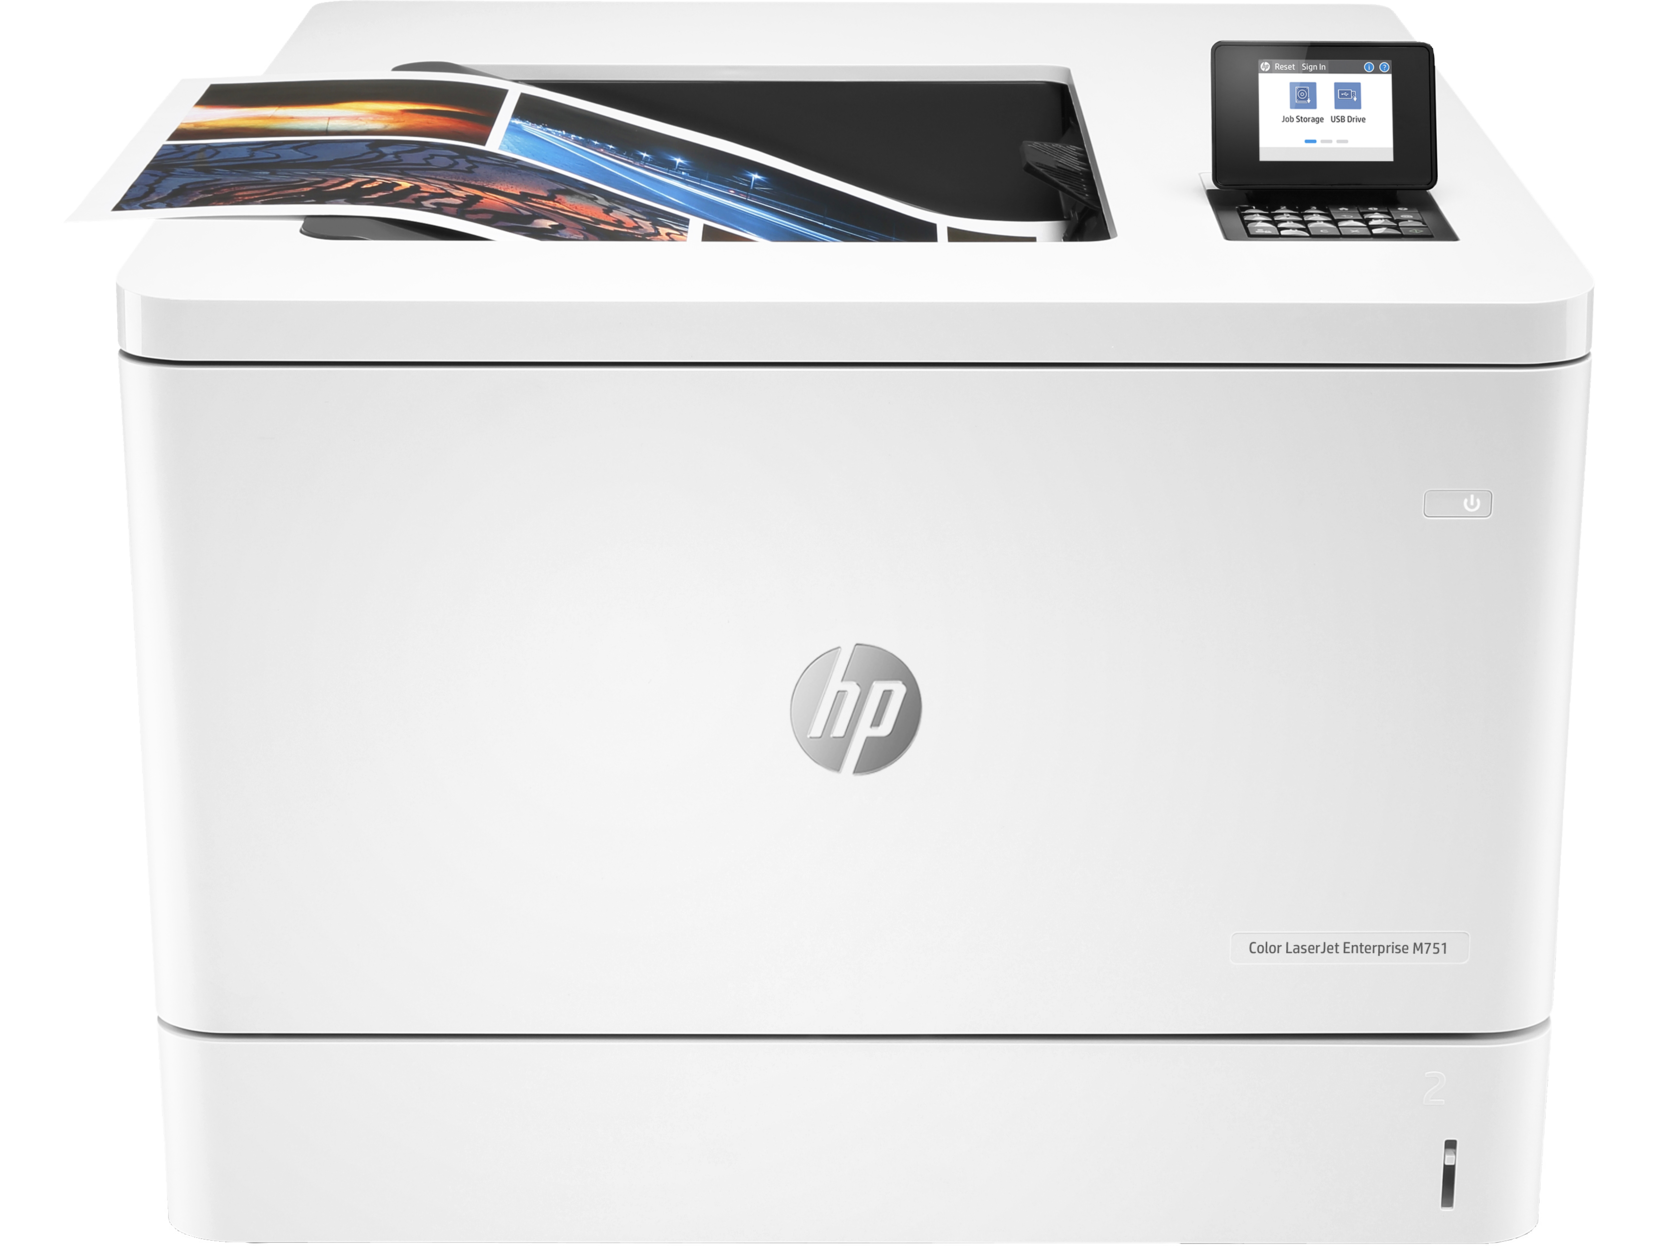 HP Color LaserJet Enterprise M751n